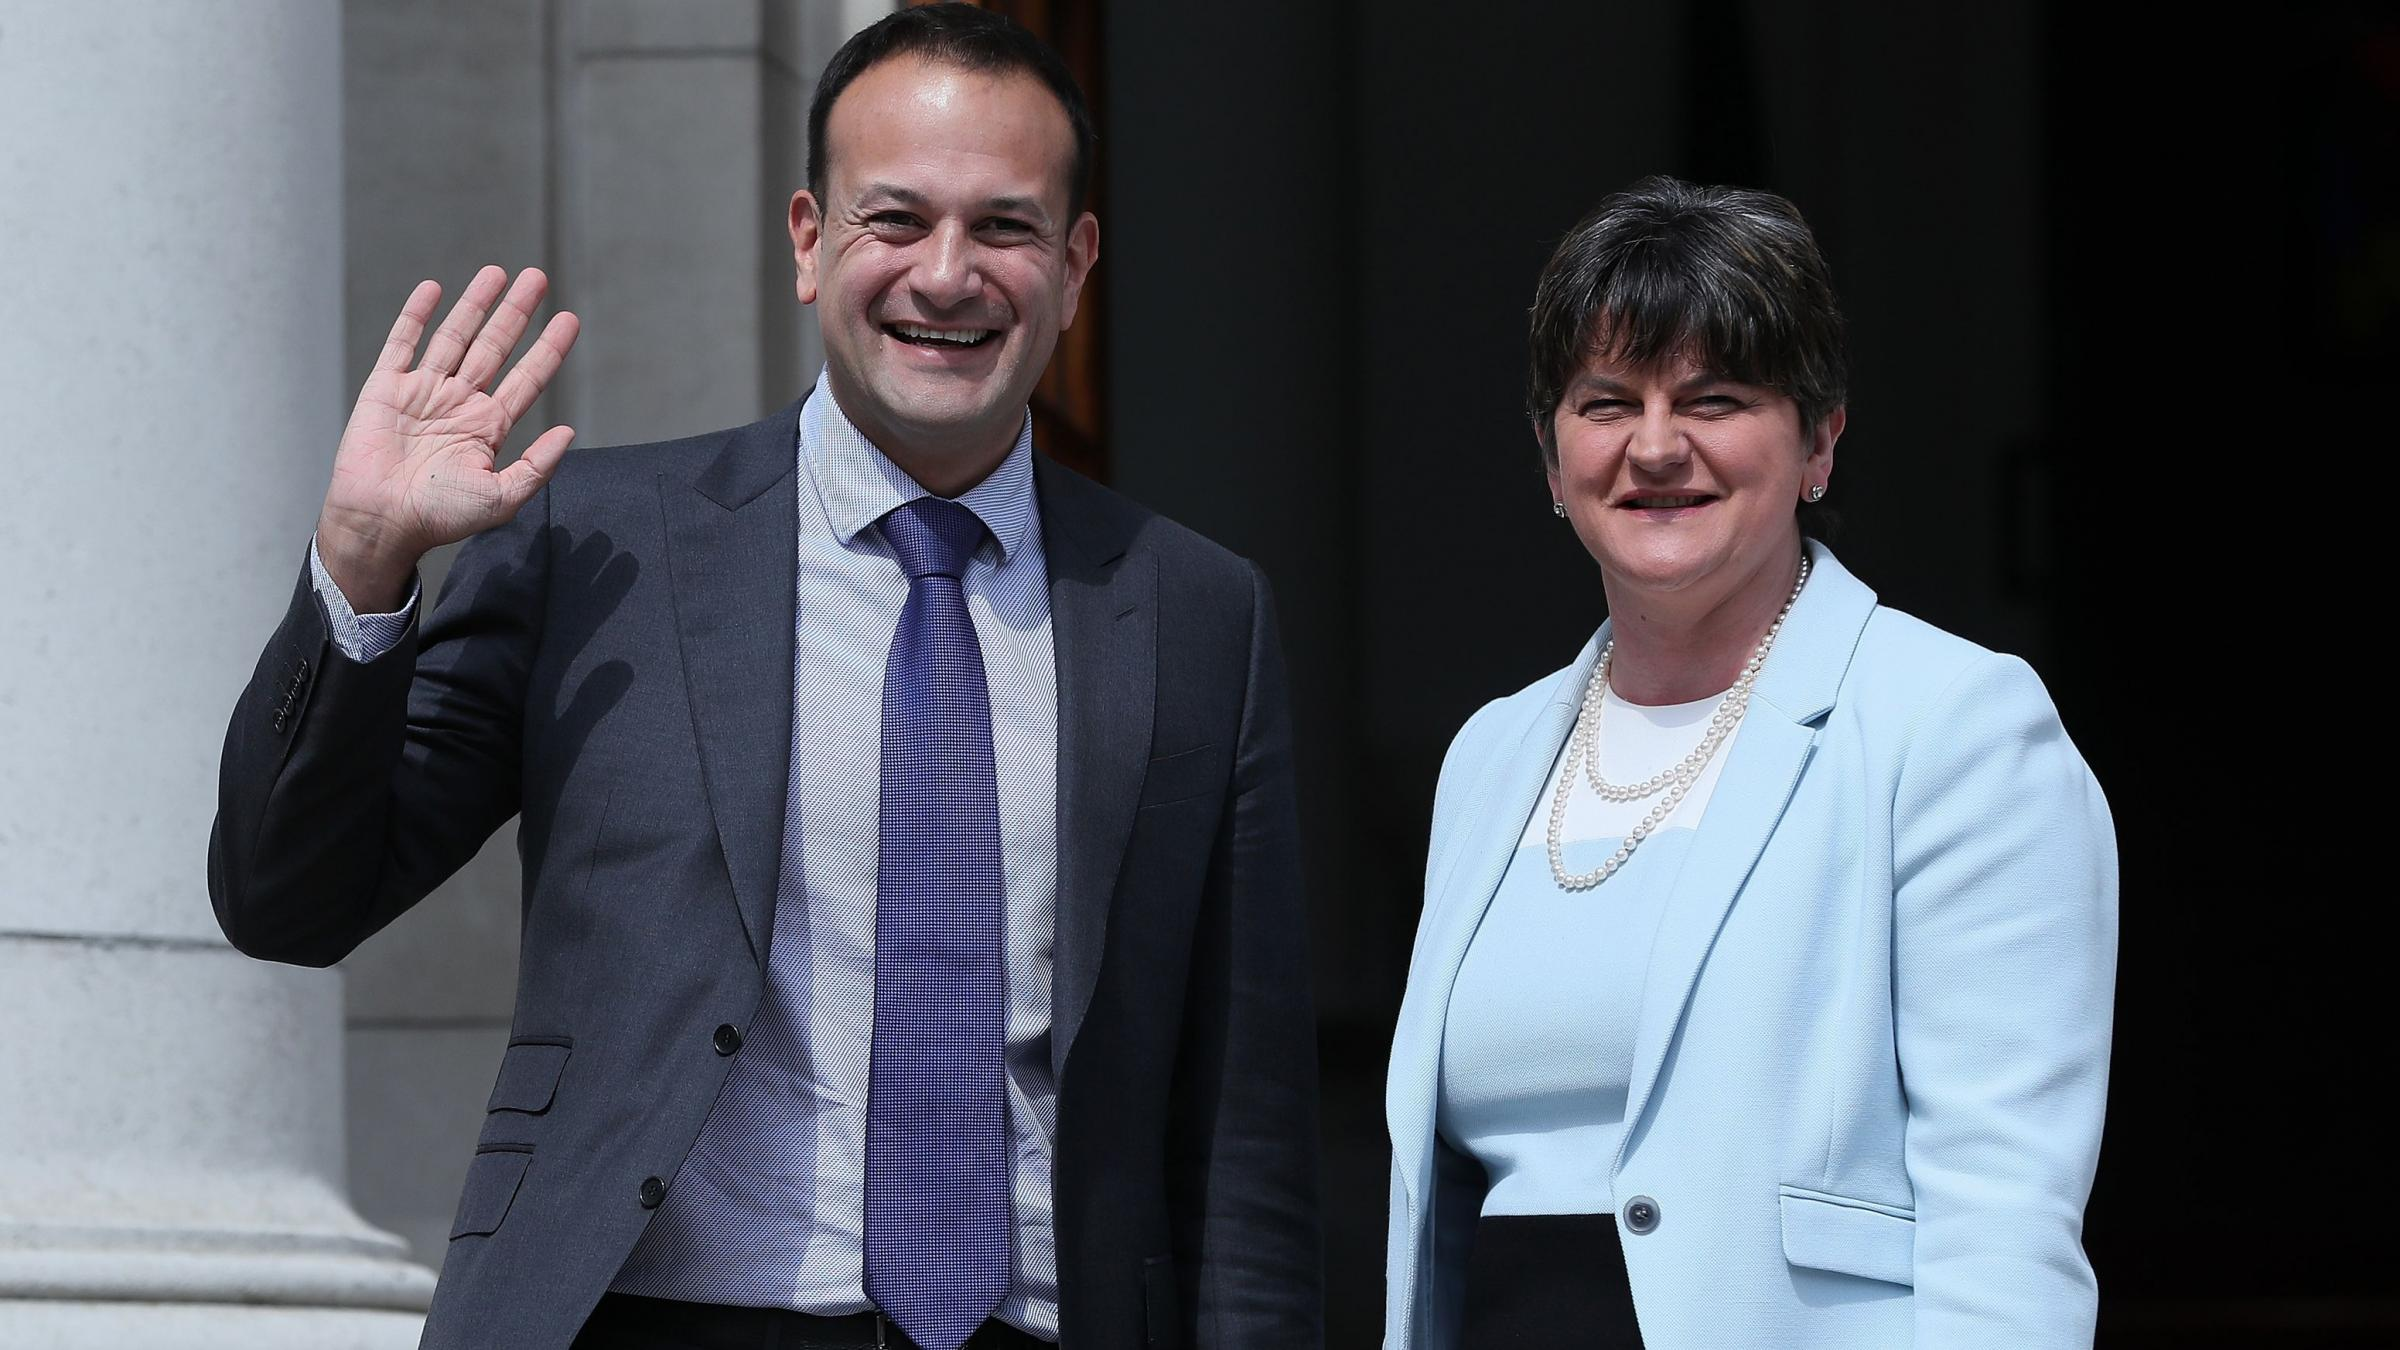 'Good progress' in DUP talks - Gavin